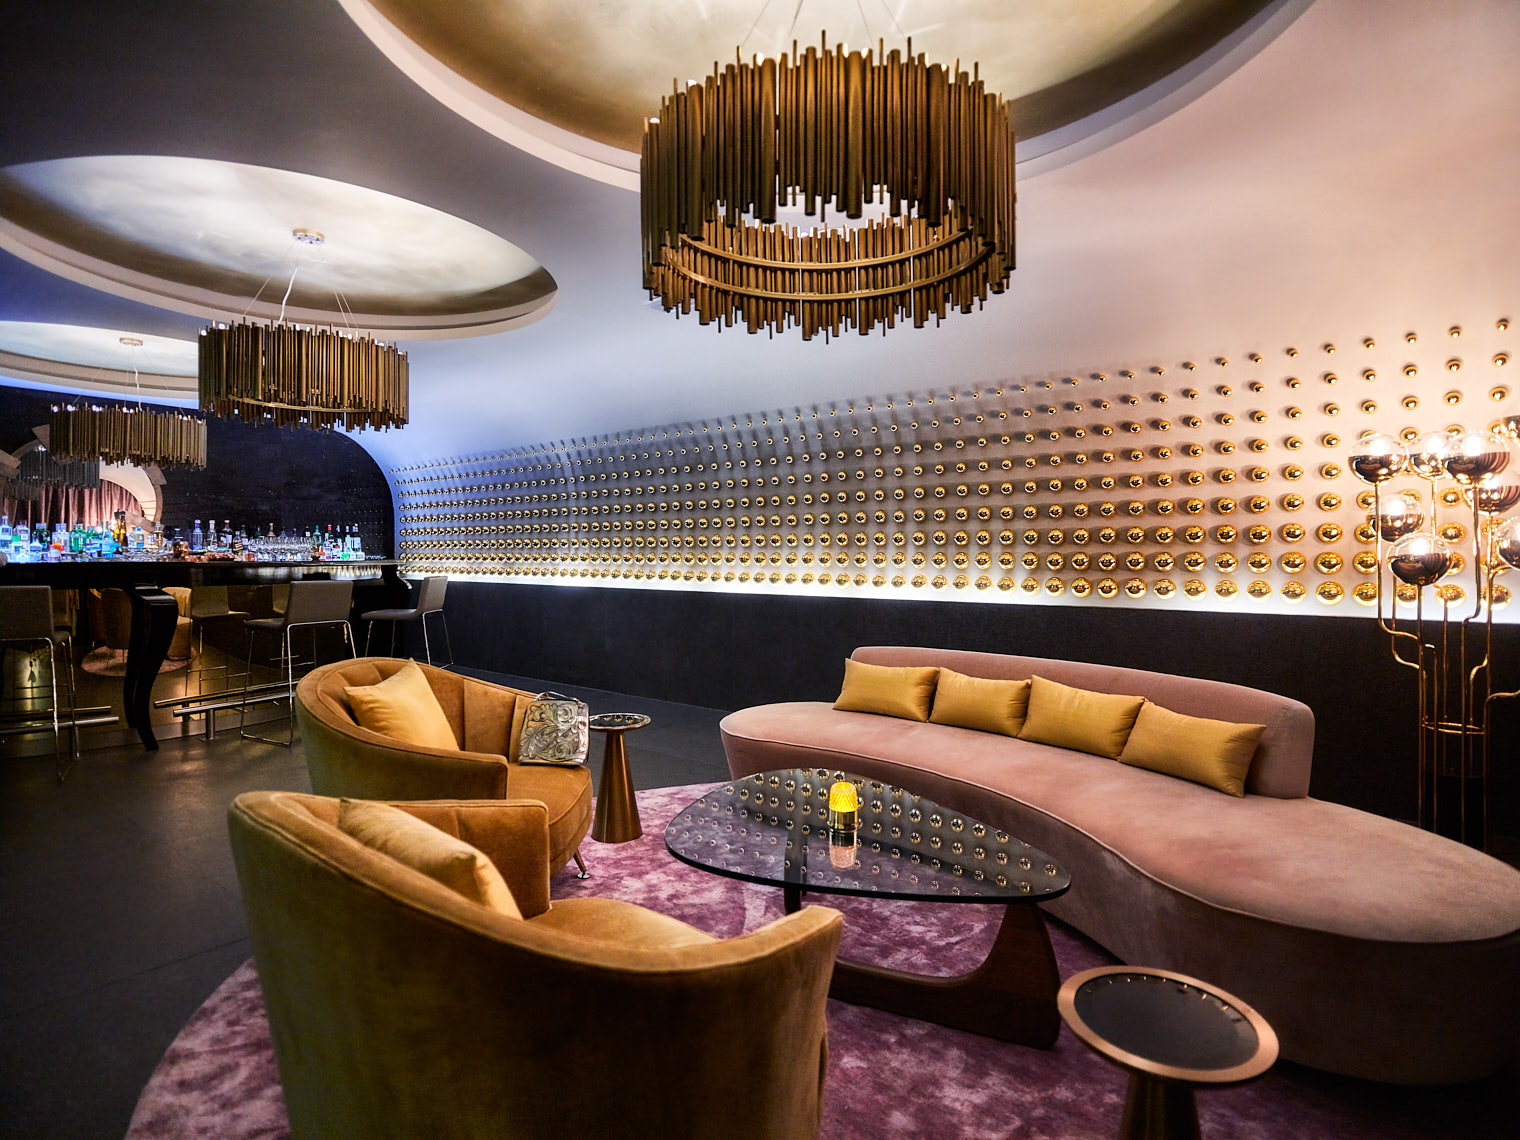 Kevin Steele - a hip lounge and nightclub interior